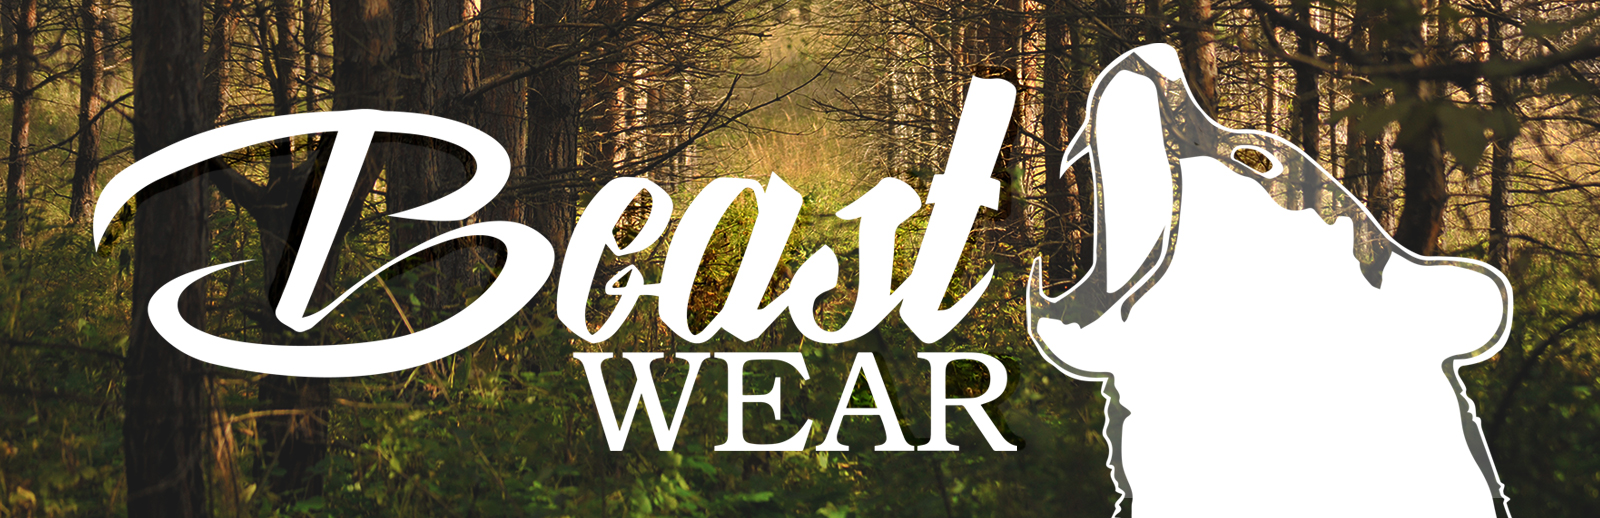 Header Beast Wear von Eric Large